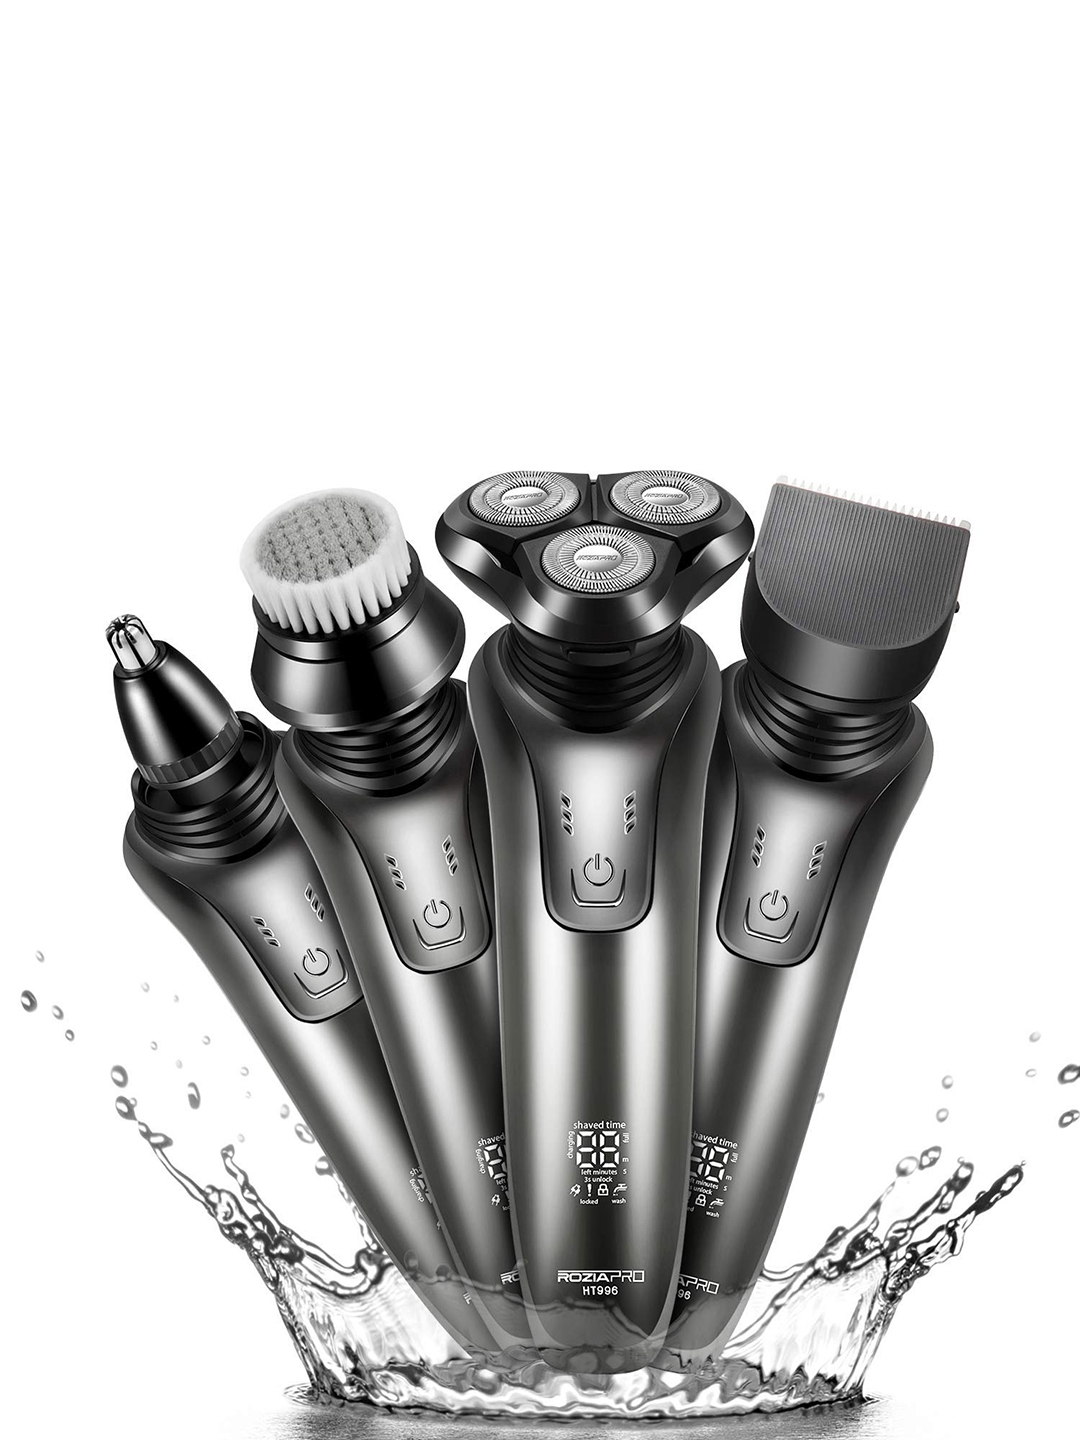 Rozia Men Silver Toned Electric 4 in 1 Rotary Shaver Beard Trimmer